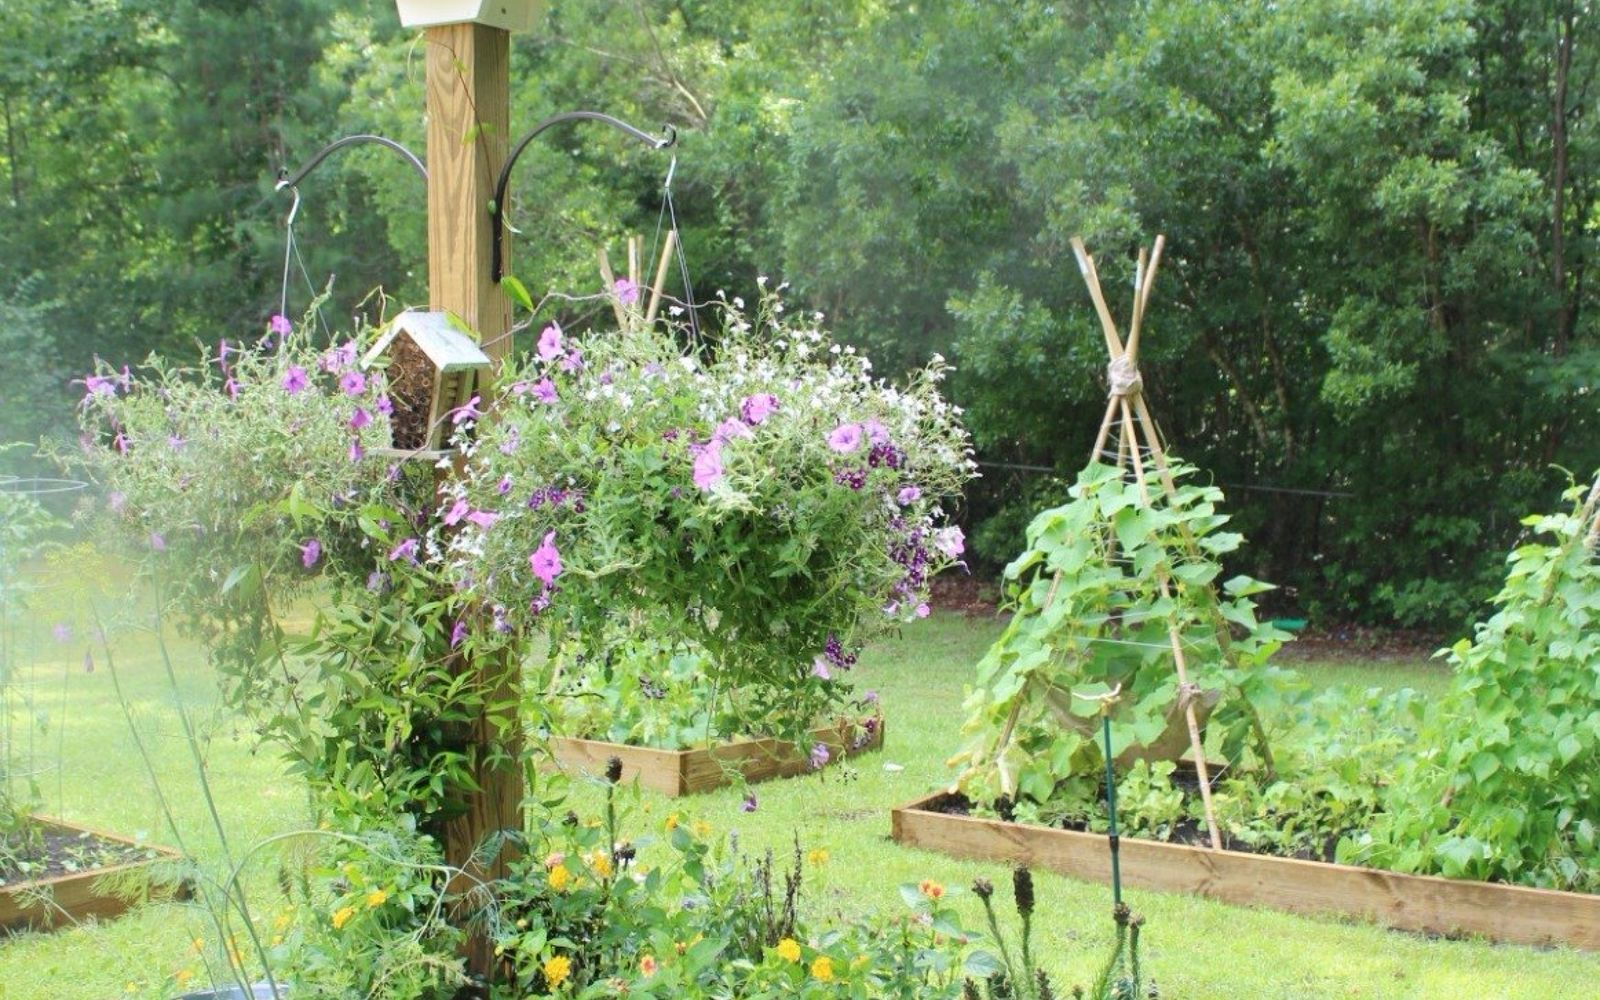 s 30 ways for you to style your garden, Arrange A Garden Special For Bees With Flower